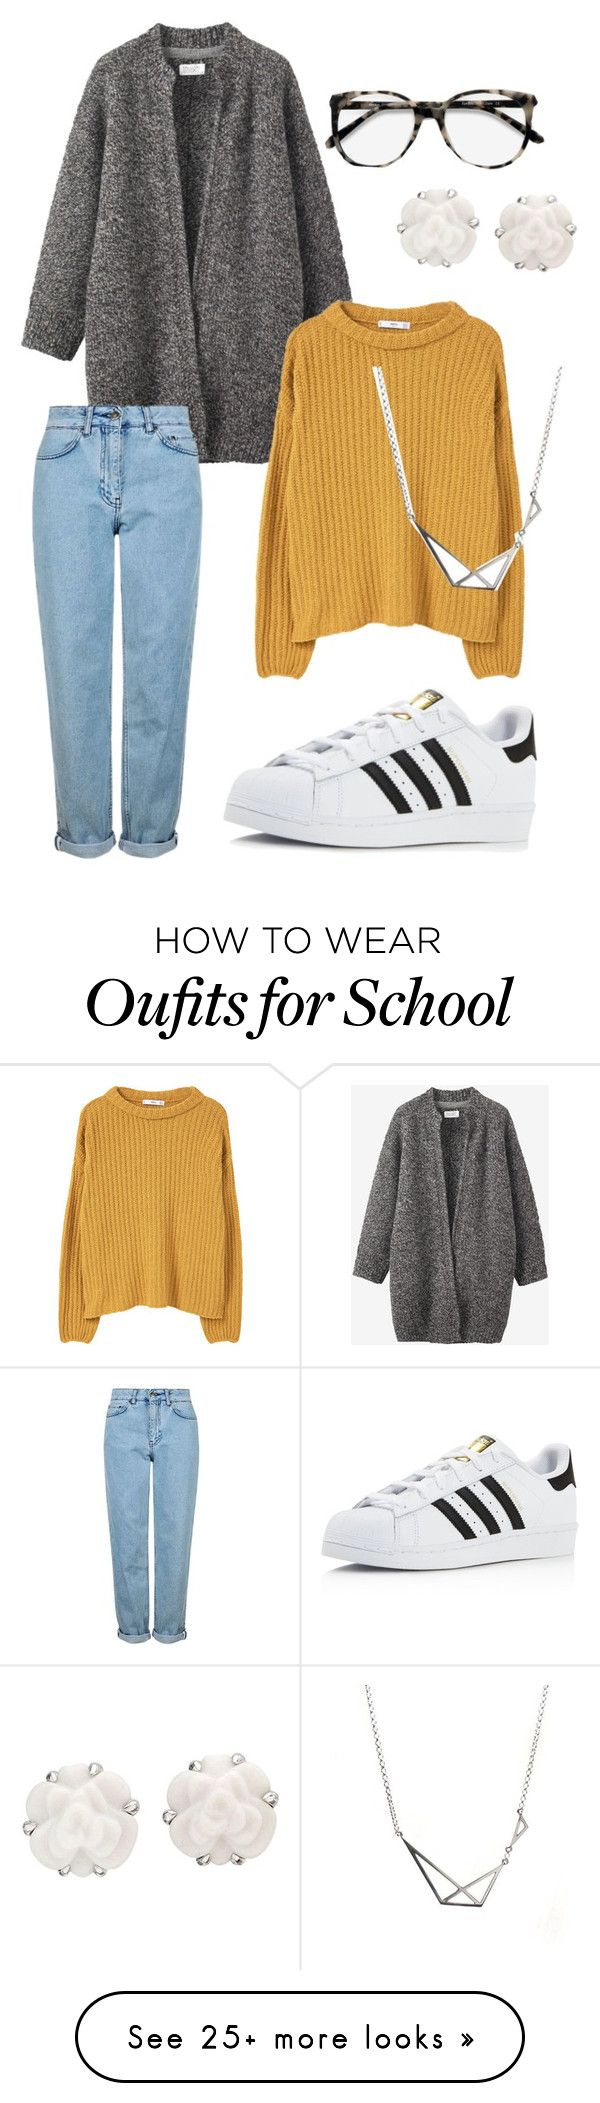 """back to school"" by charlottkfm on Polyvore featuring Toast, Topshop, Ace, adidas, MANGO and Chanel"